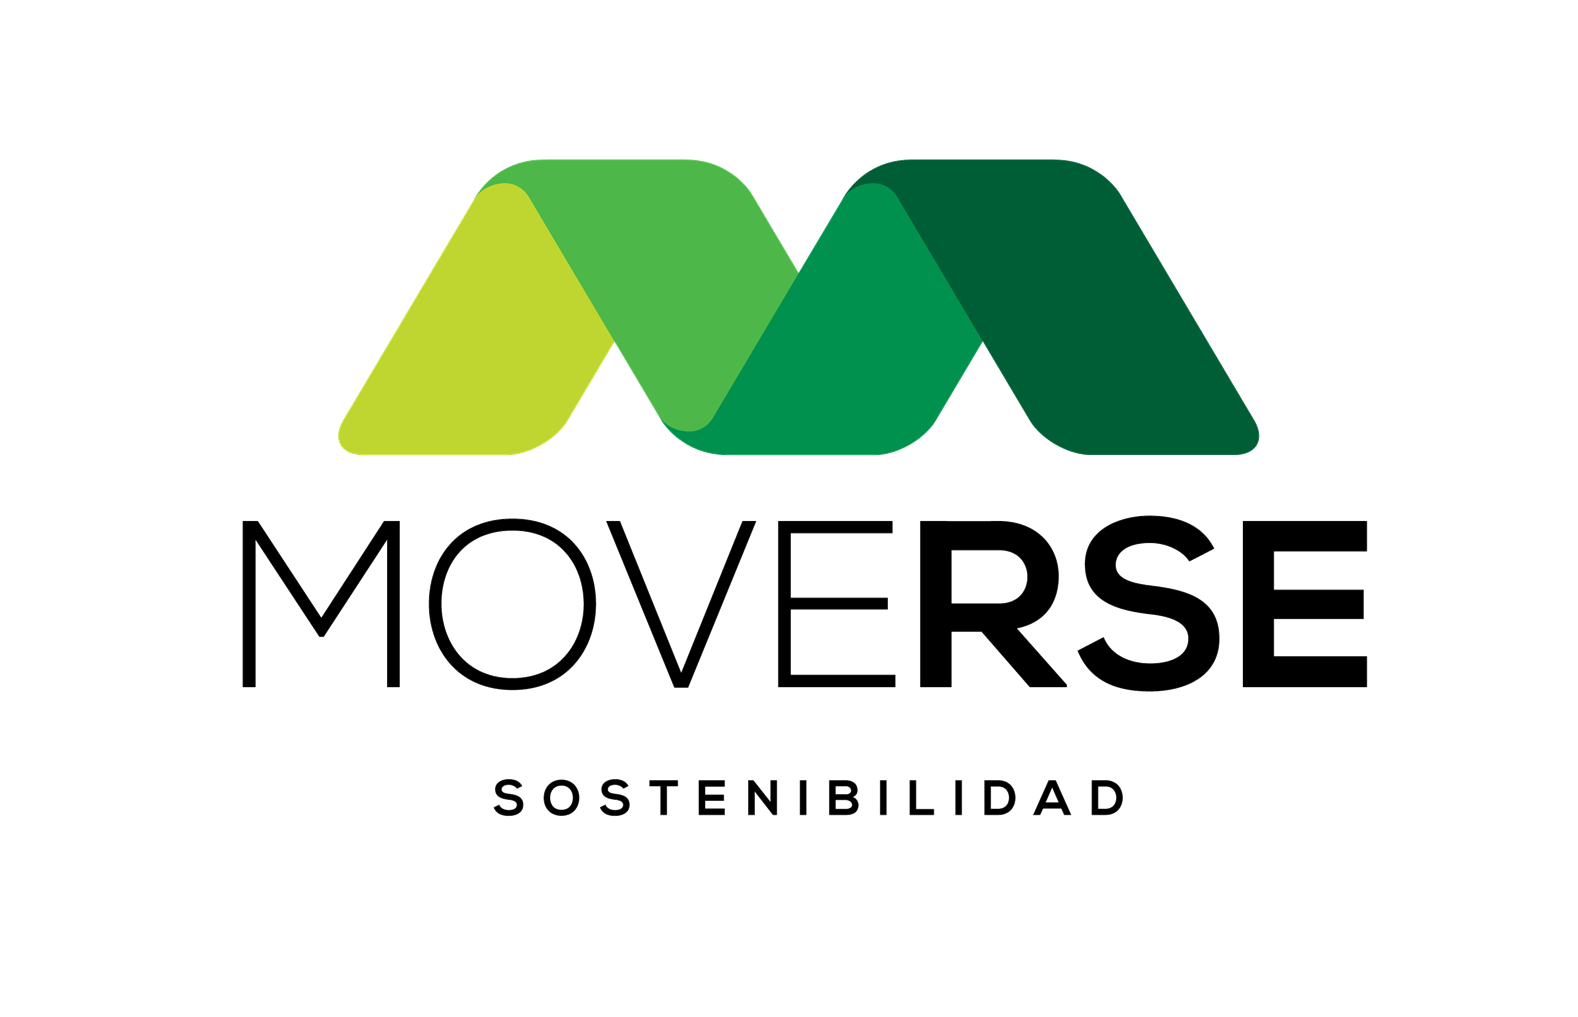 logo-moverse-transp